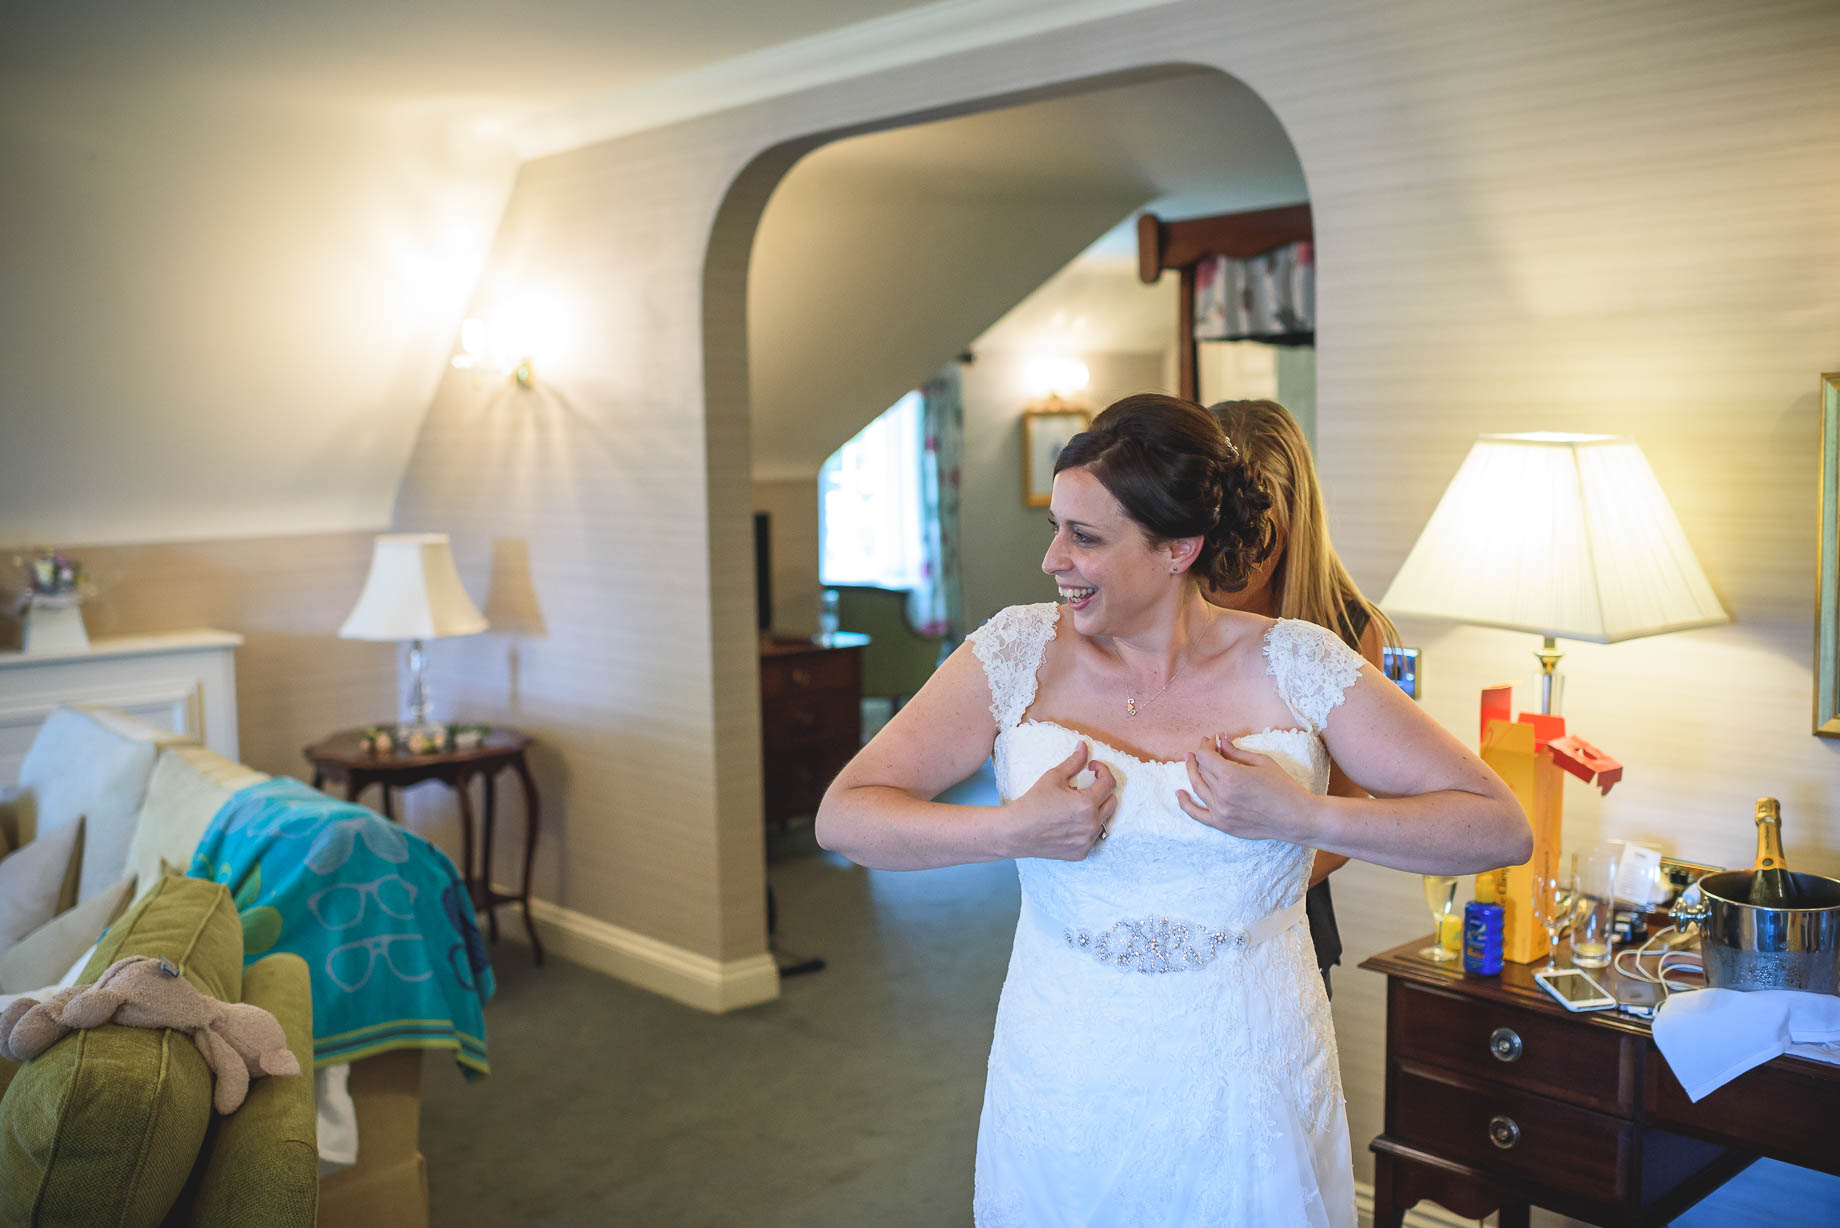 Luton Hoo wedding photography by Guy Collier Photography - Lauren and Gem (44 of 178)